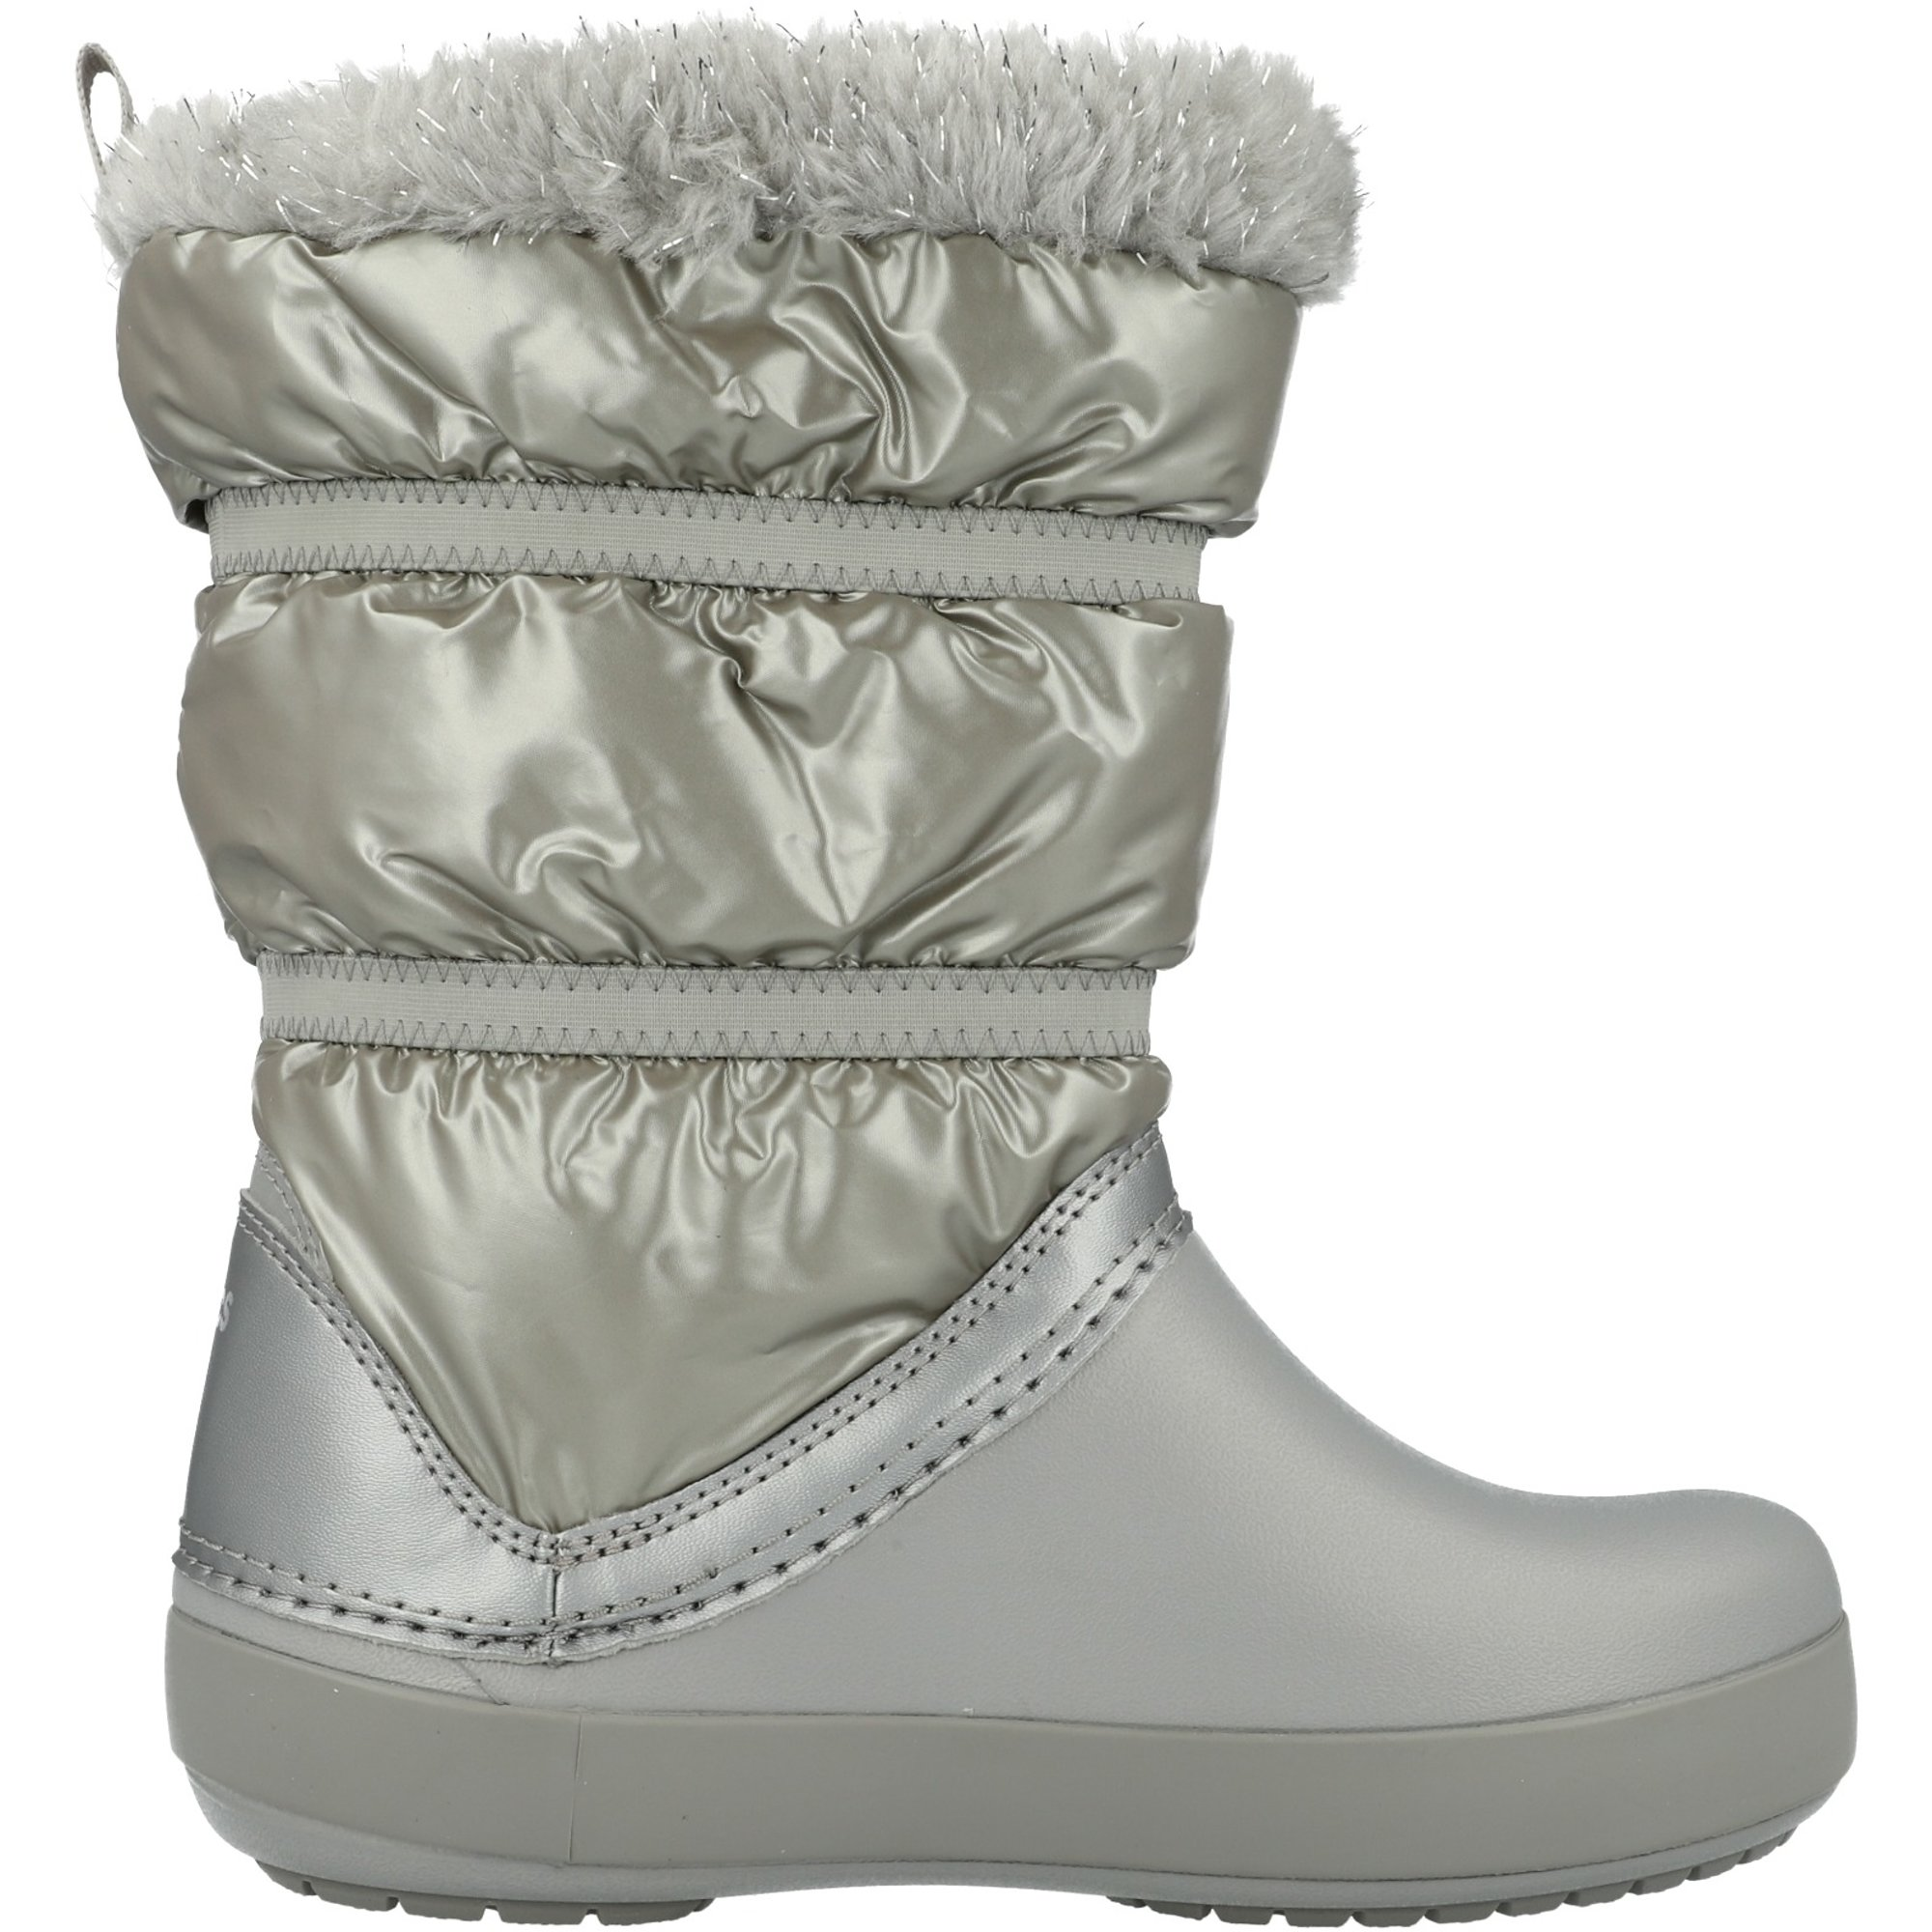 Crocs CB LodgePoint Metallic Boot Silver Metallic Nylon